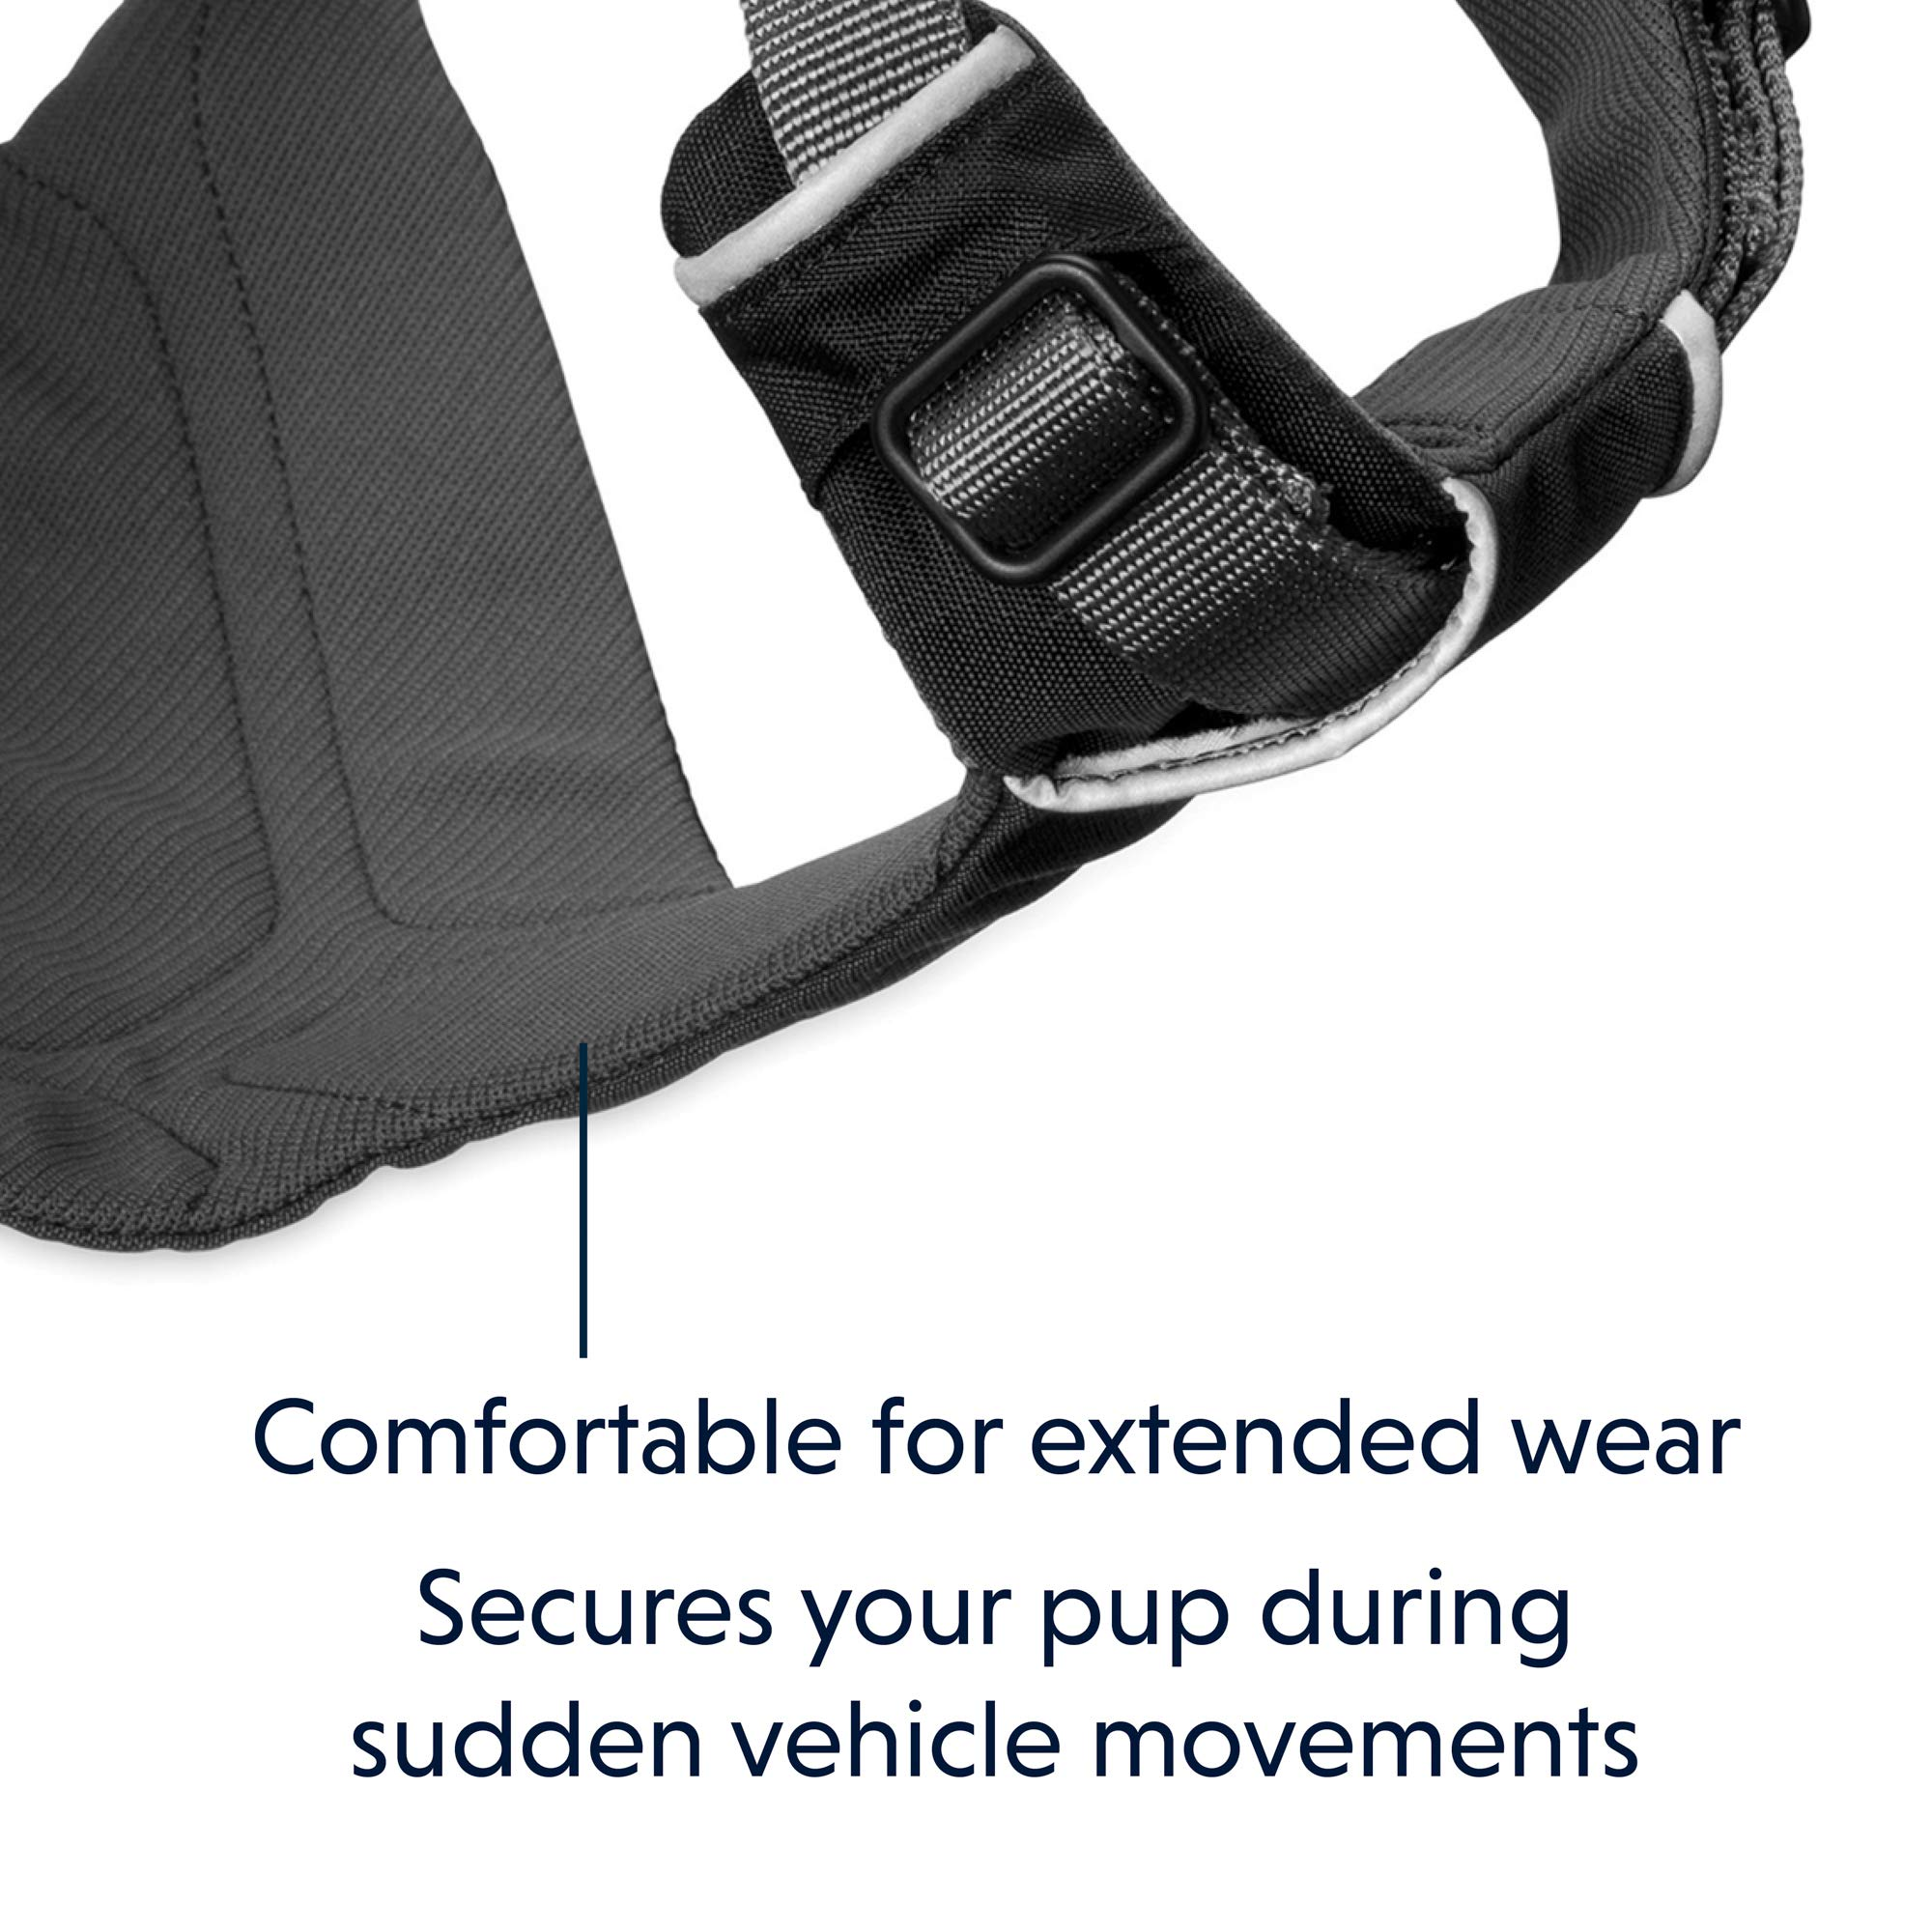 RUFFWEAR - Load Up, Dog Car Harness with Strength-Rated Hardware, Secure Vehicle Restraint, Universal Seat Belt Attachment, Obsidian Black, Medium by RUFFWEAR (Image #4)